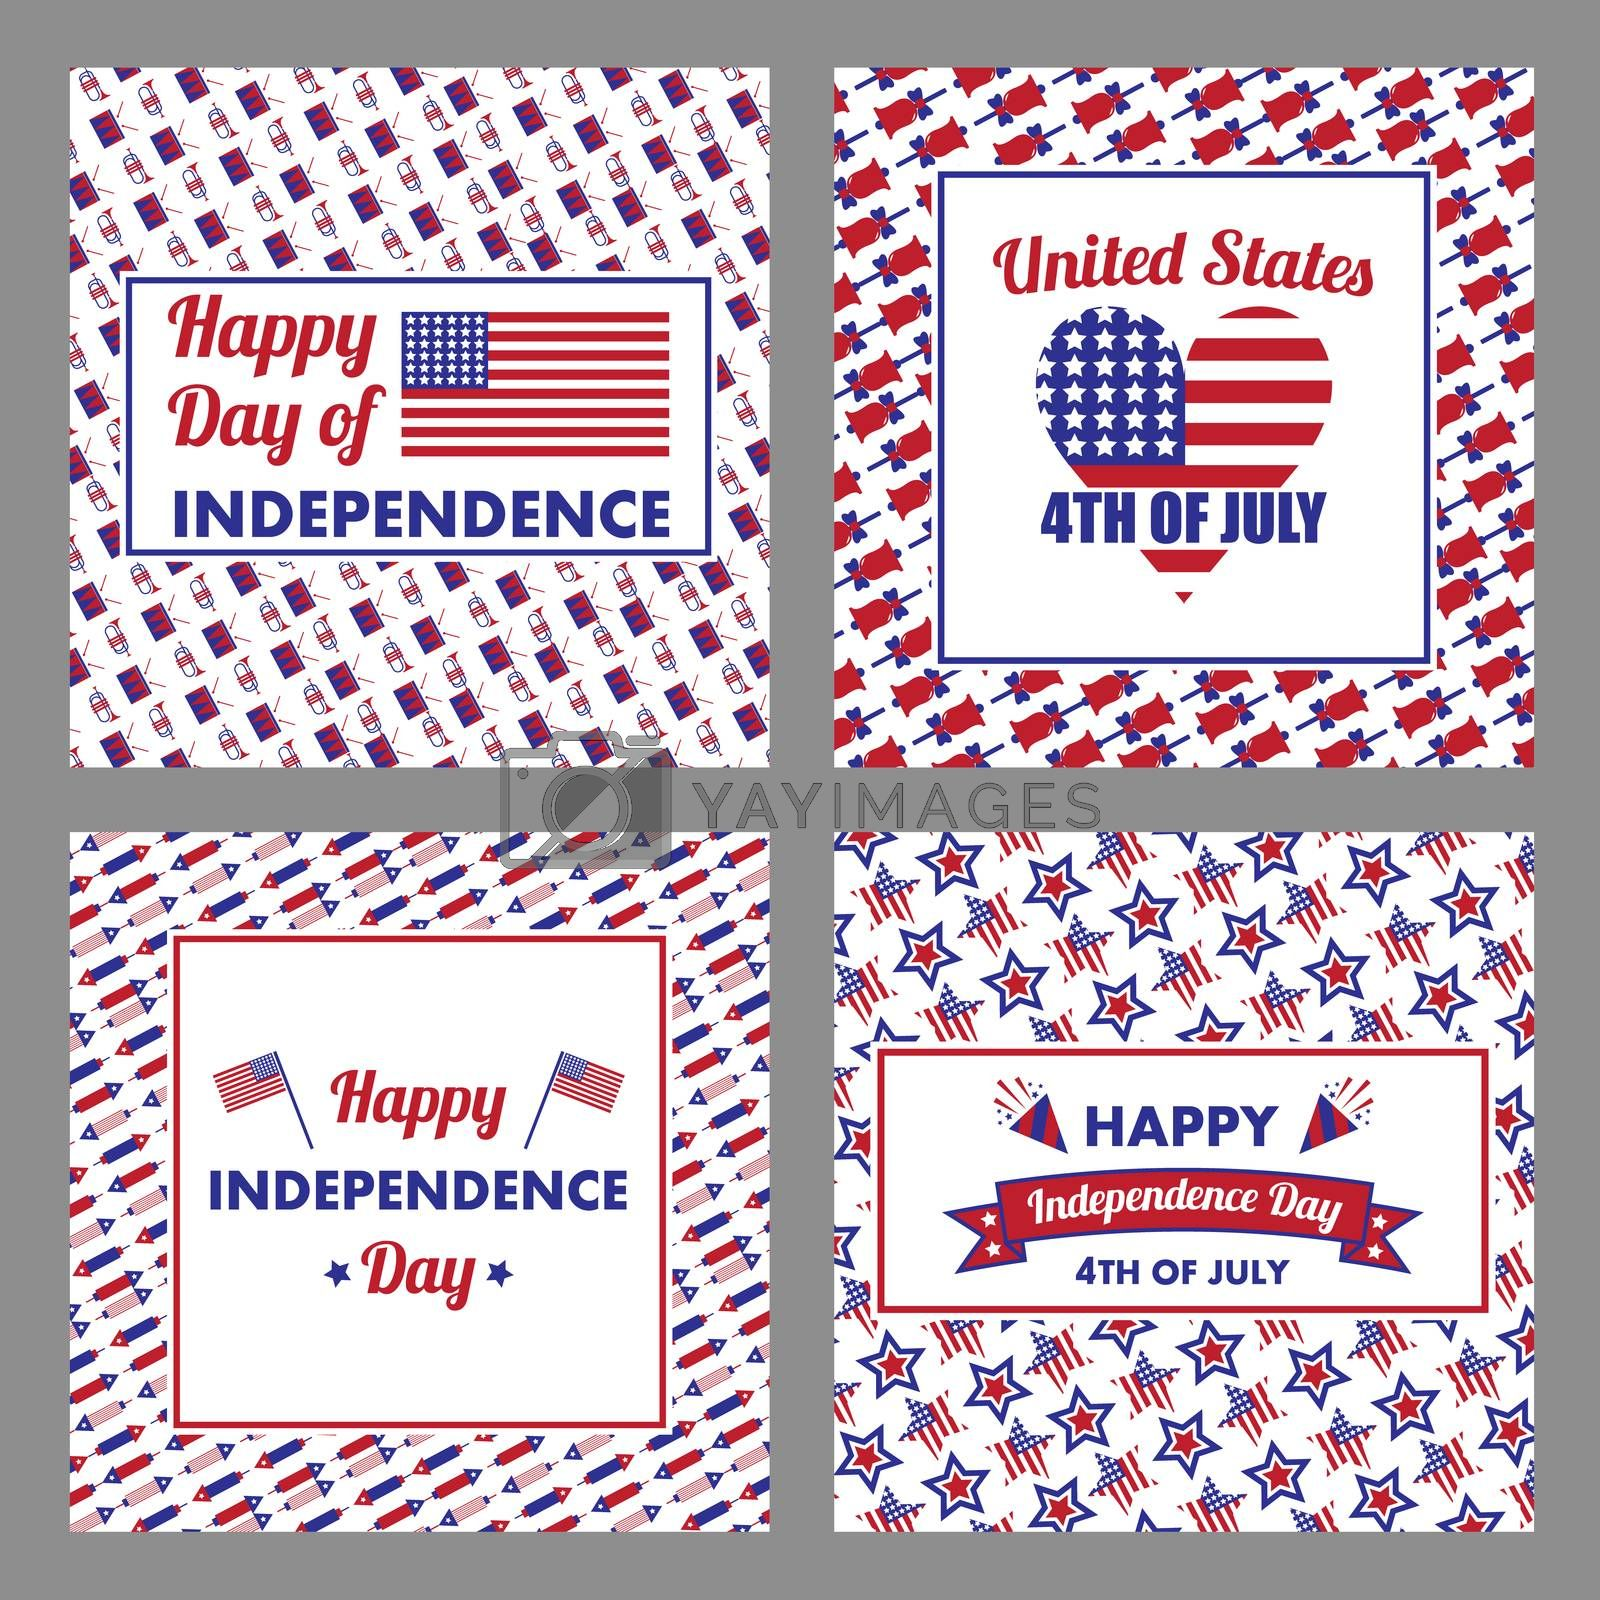 Royalty free image of 4th July with happy independence day text by Wavebreakmedia